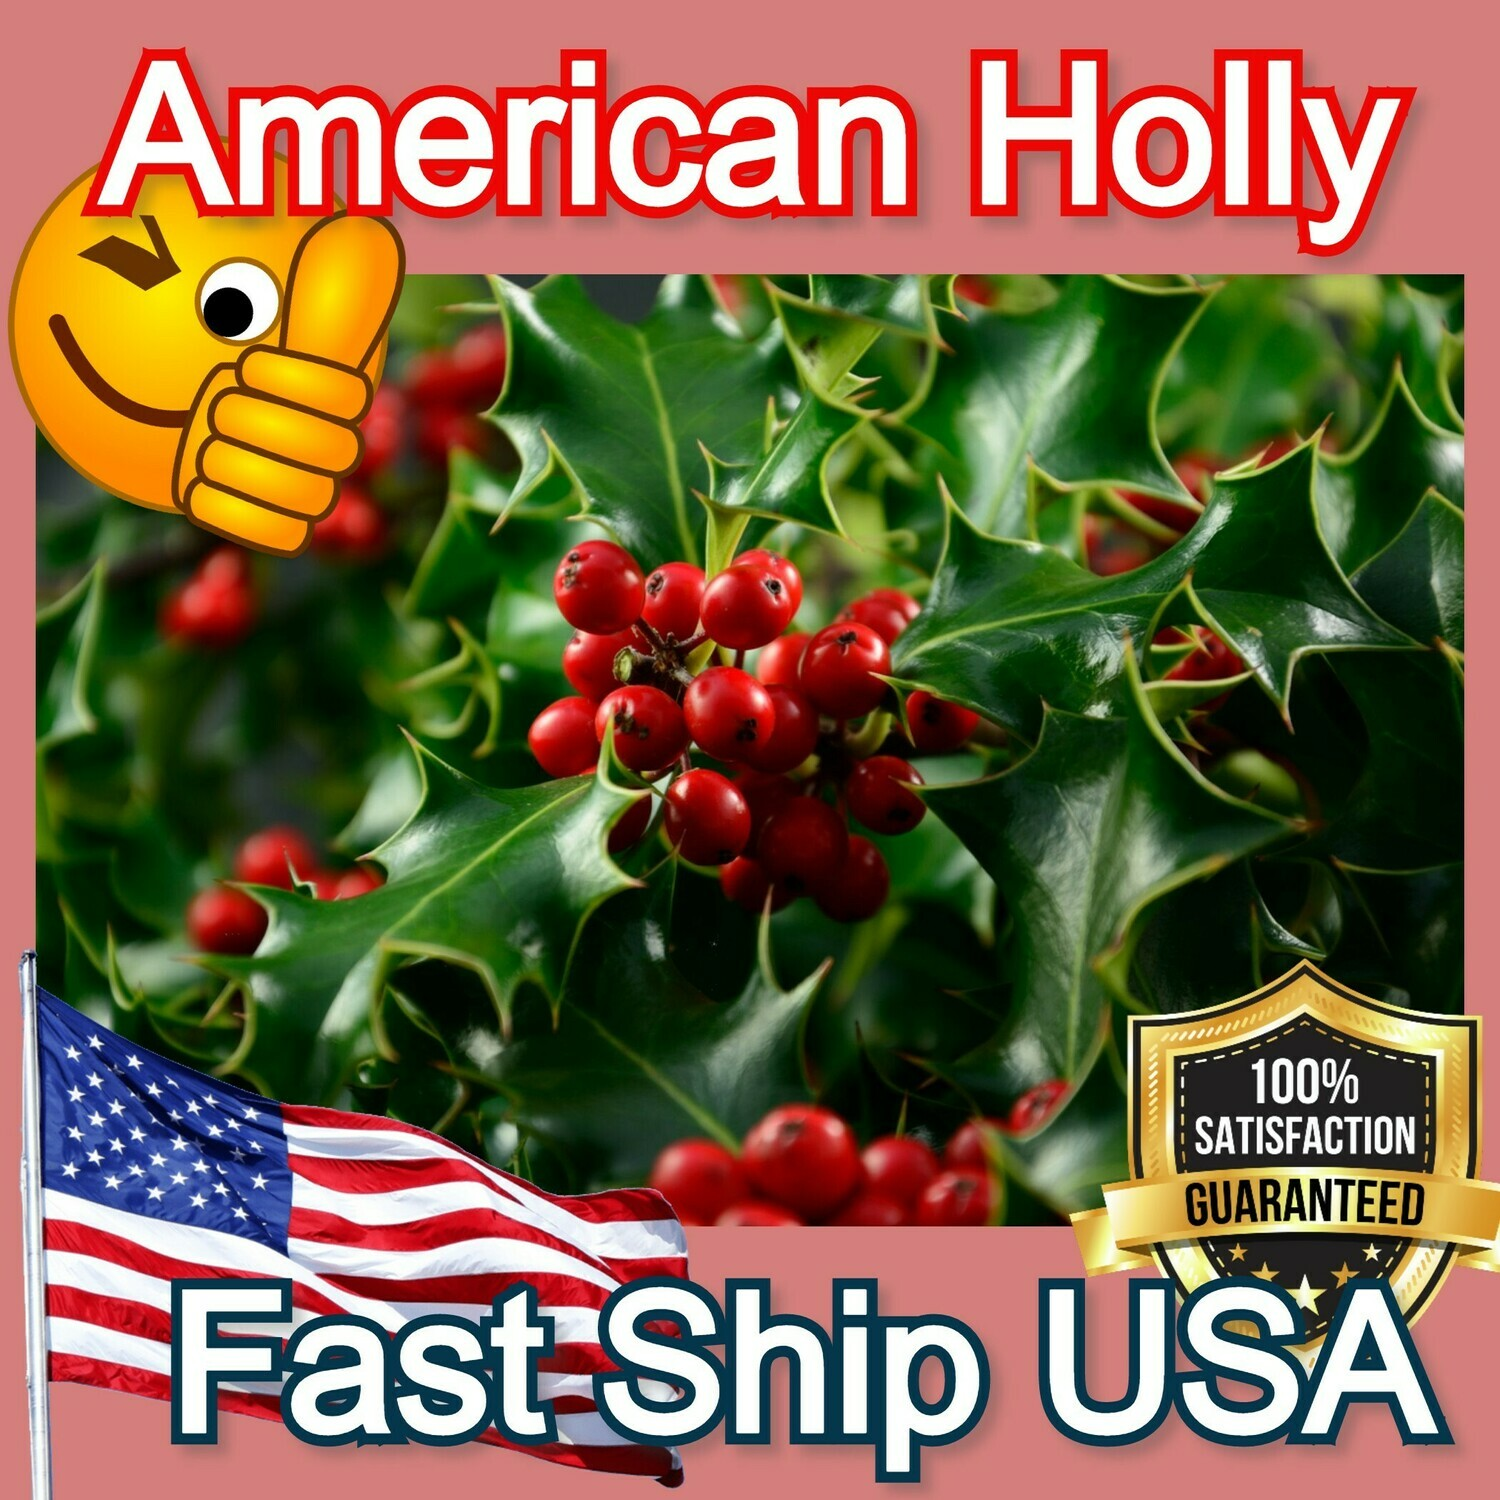 American Holly tree hardy shrub